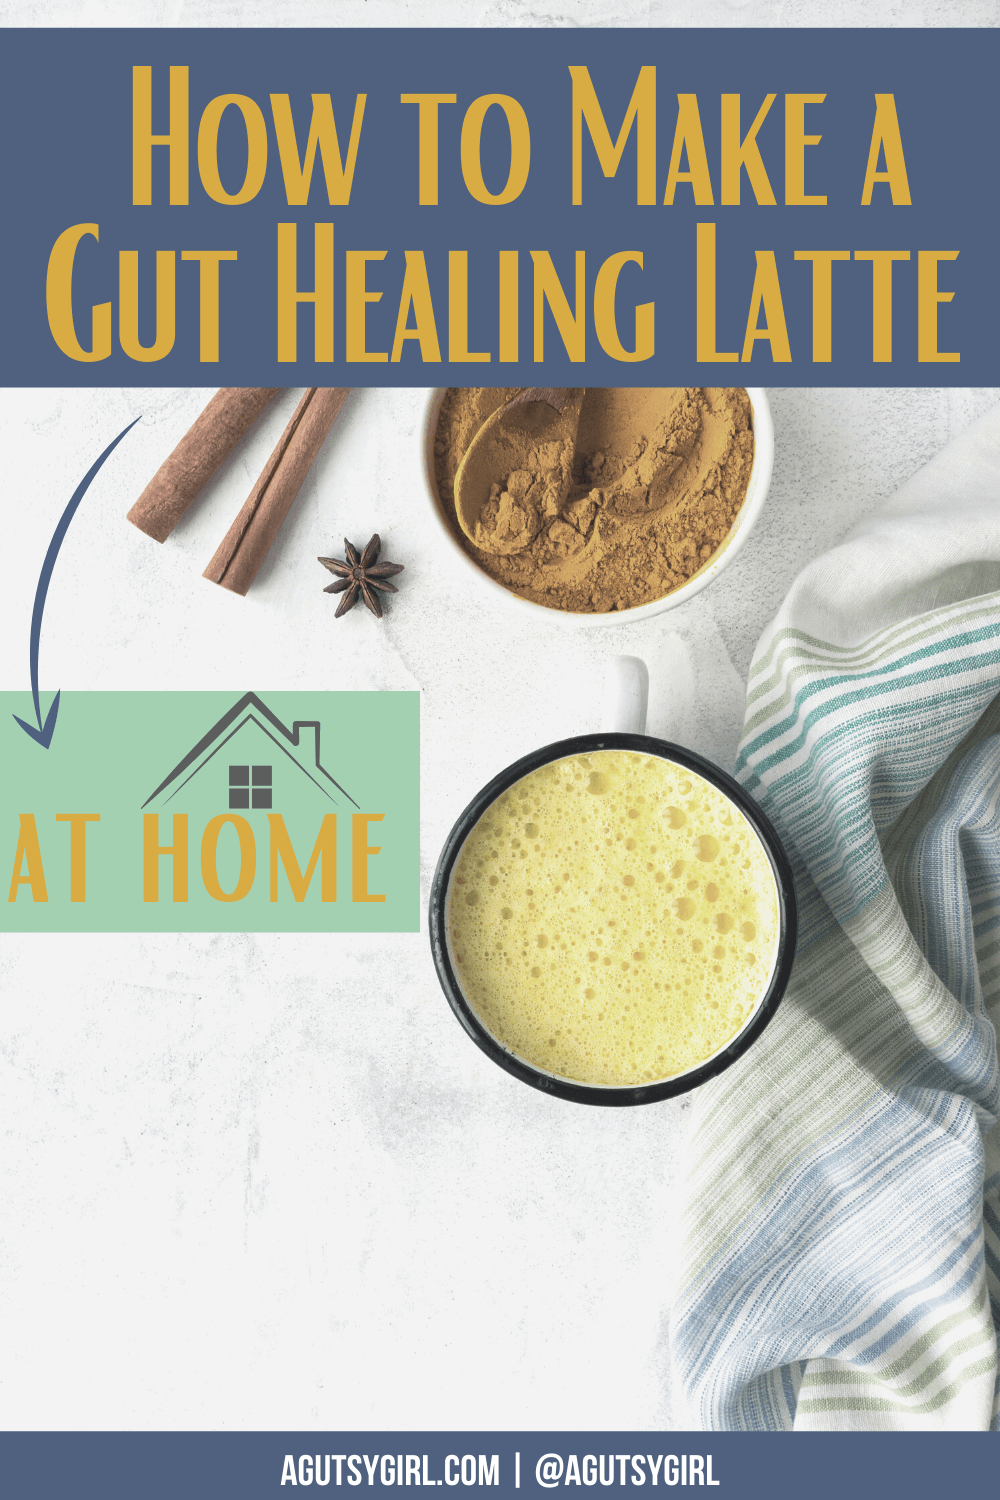 How to Make a Gut Healing Latte at Home agutsygirl.com #guthealth #guthealing #latte #diylattes #diycoffee